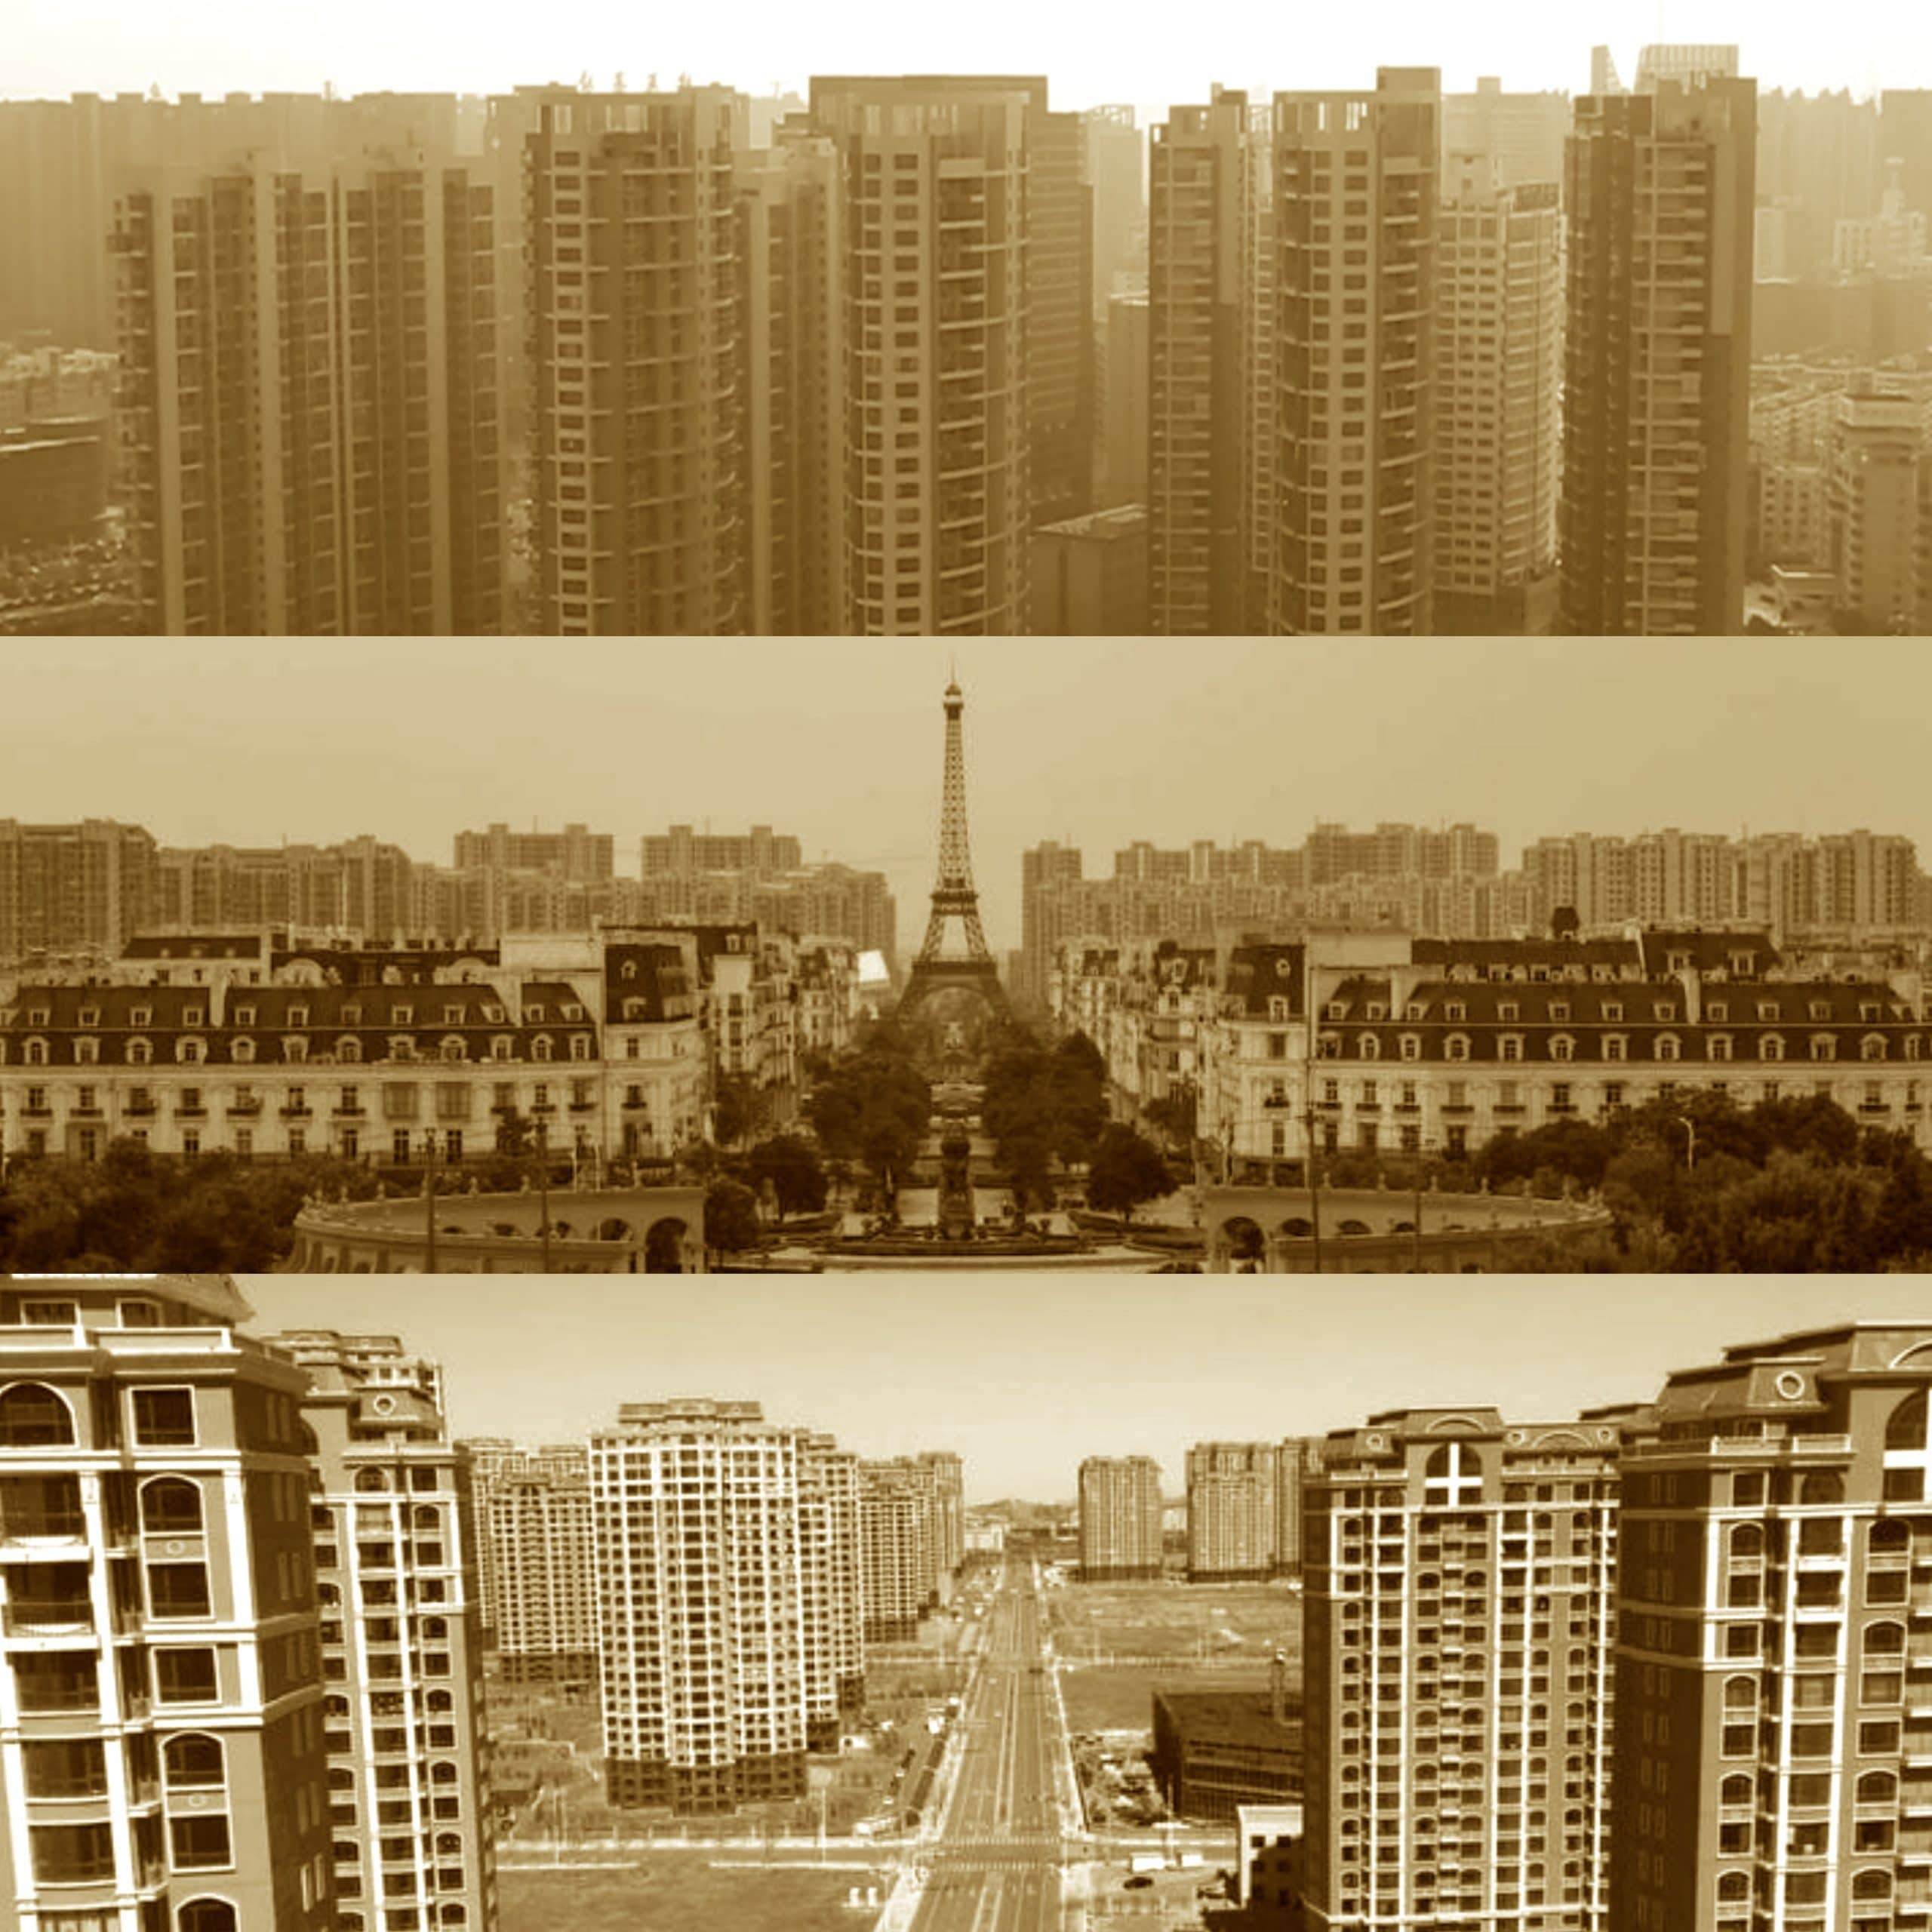 Ghost towns (with a replica of the Eiffel Tower!) in China